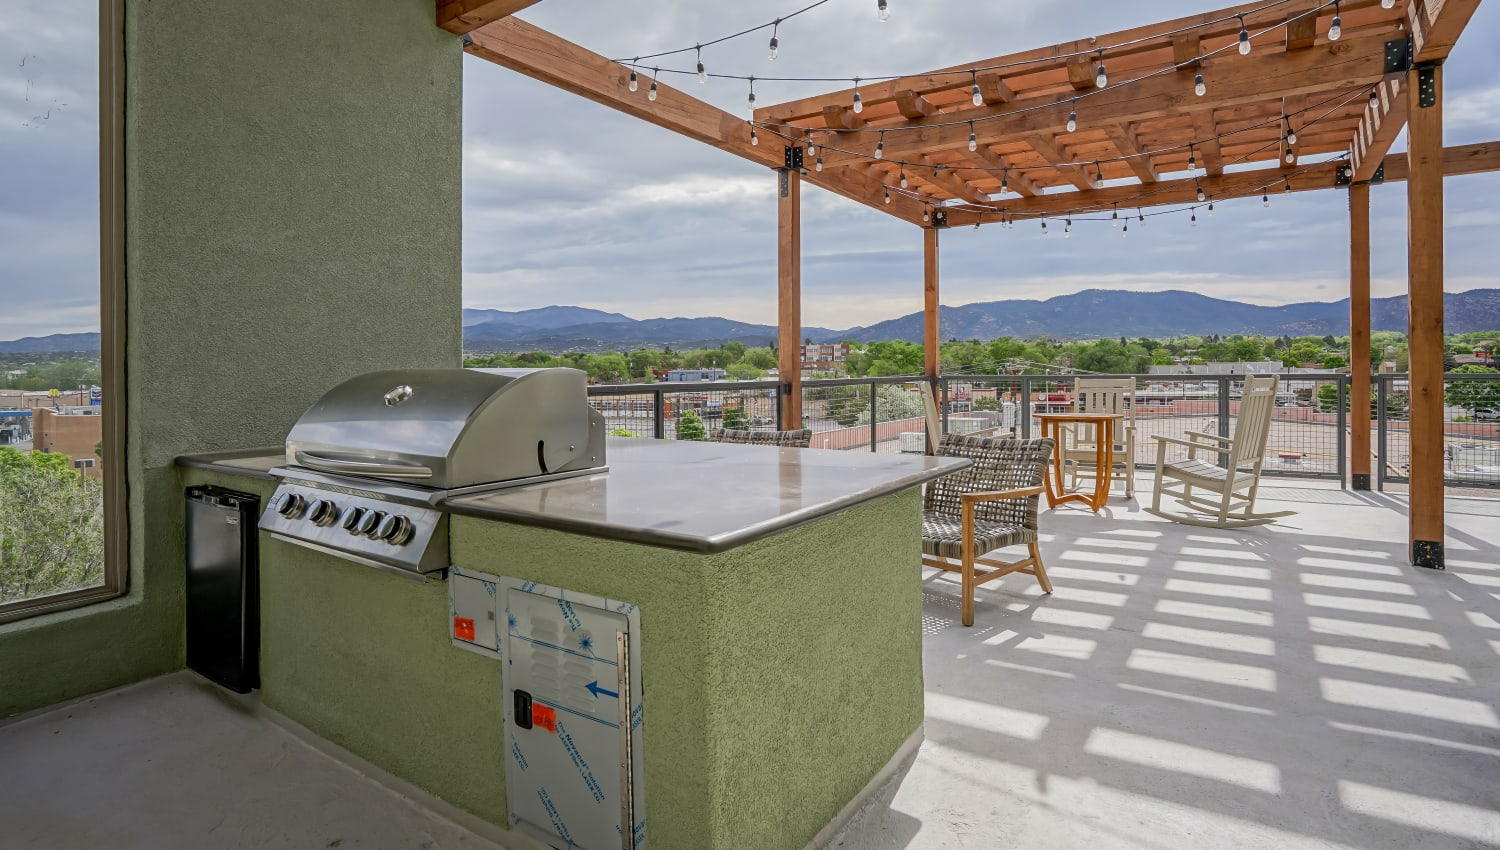 Barbecue on the patio with gorgeous views at Capitol Flats in Santa Fe, New Mexico